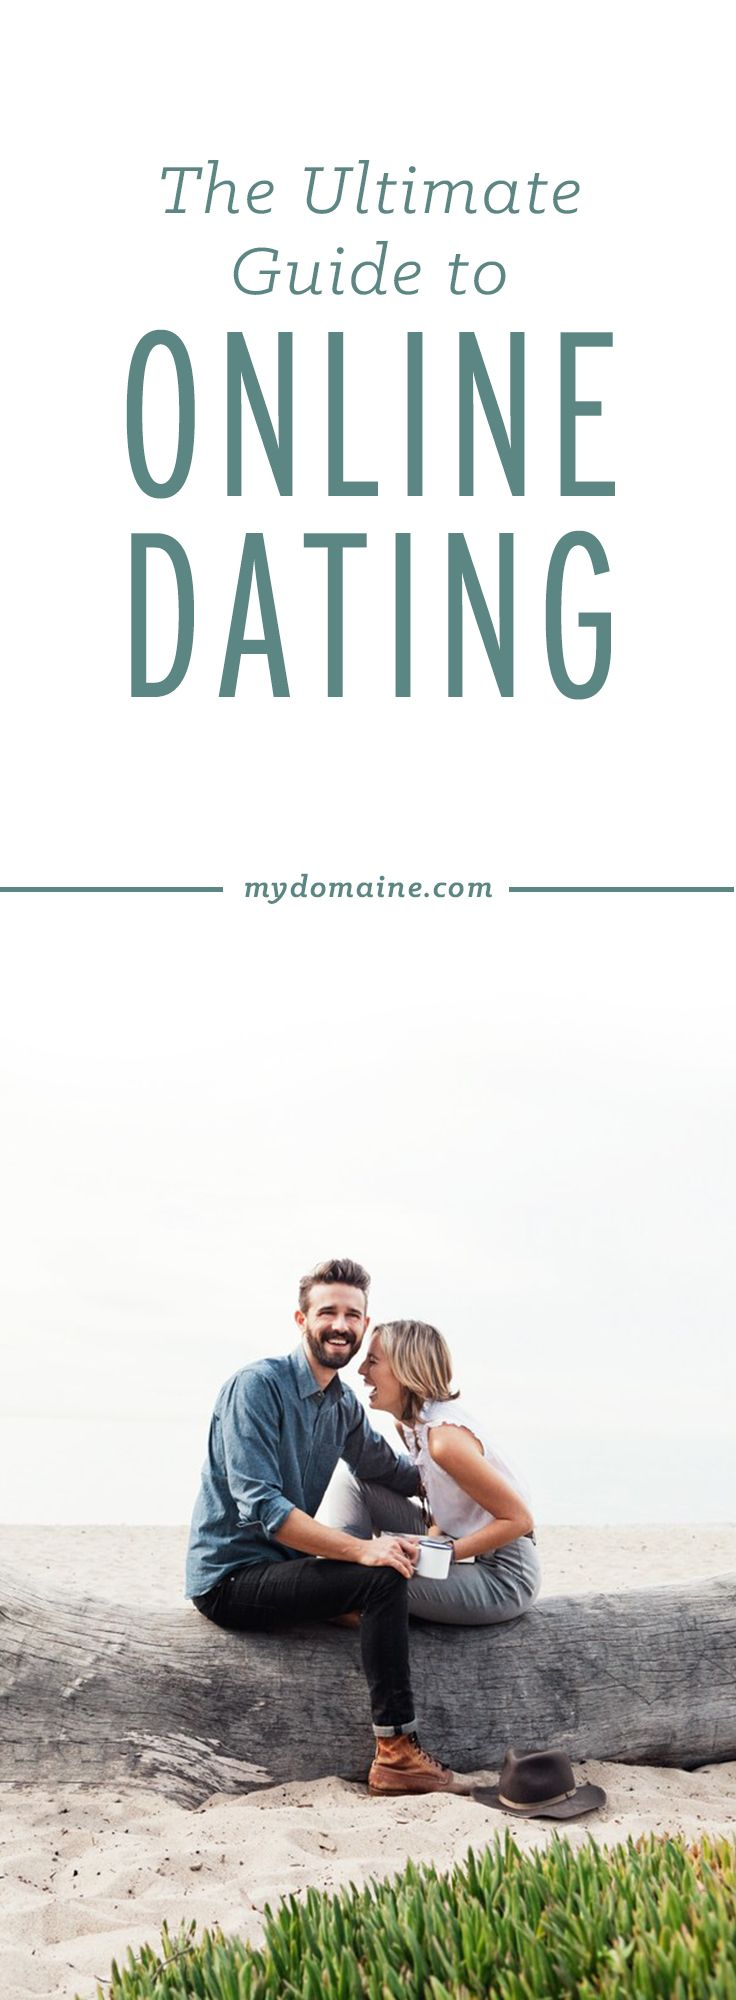 Advice about using meet wild online dating